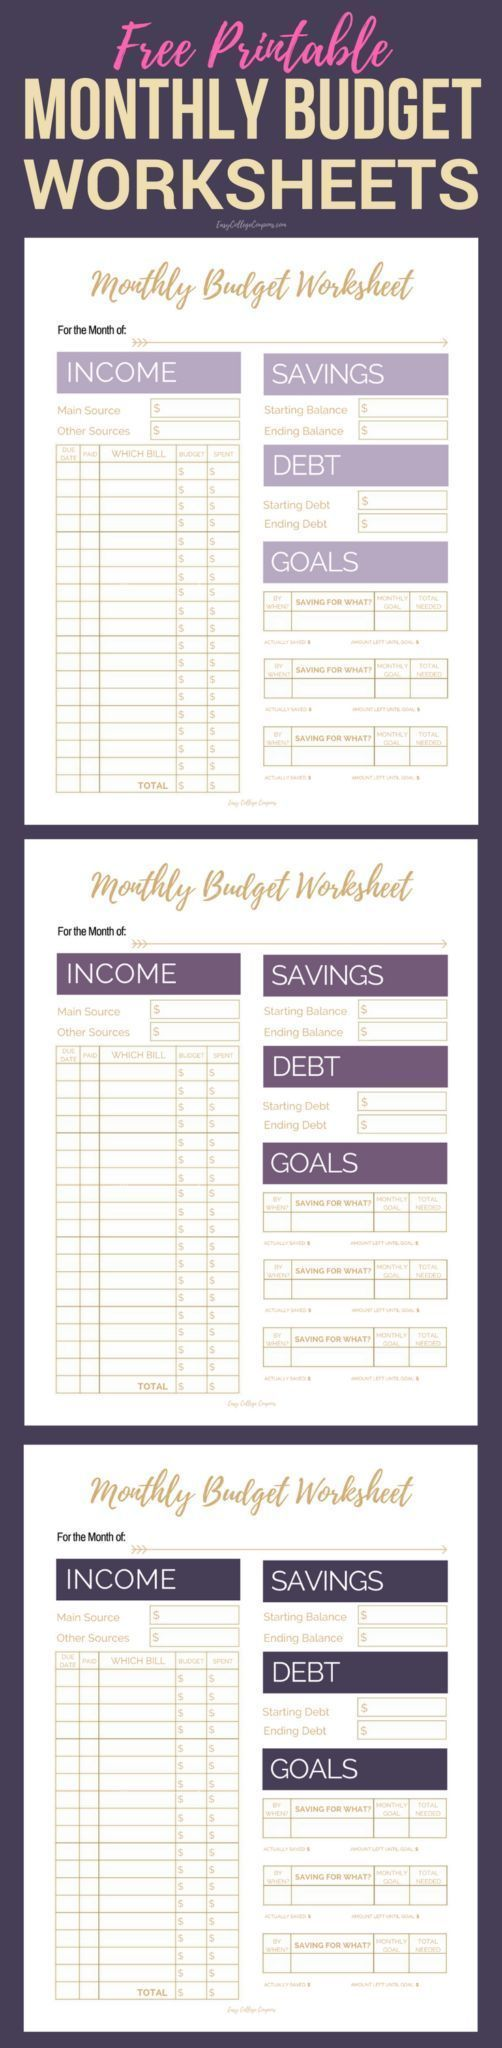 manage budgets and financial plan The most effective financial budget includes both a short-range month-to-month plan for at least a calendar year and a quarter-to-quarter long-range plan you use for financial statement reporting.